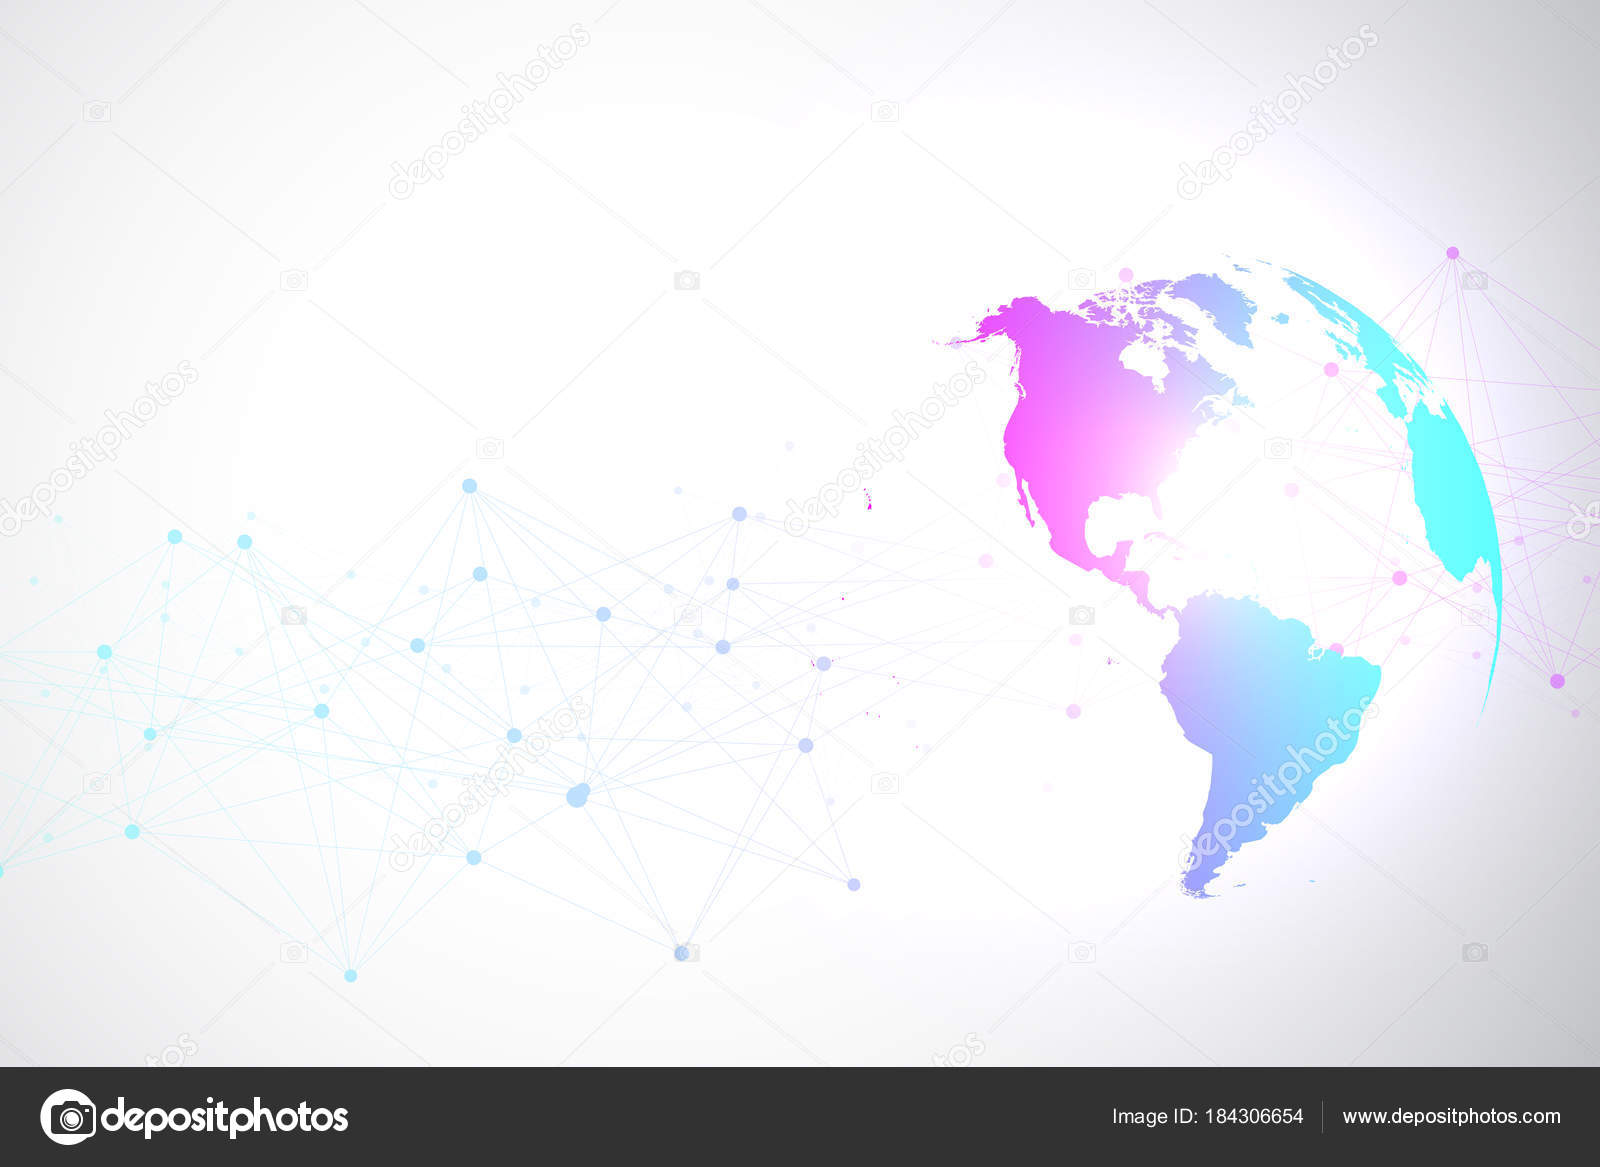 World map point with global technology networking concept digital world map point with global technology networking concept digital data visualization lines plexus big data background communication scientific vector gumiabroncs Image collections